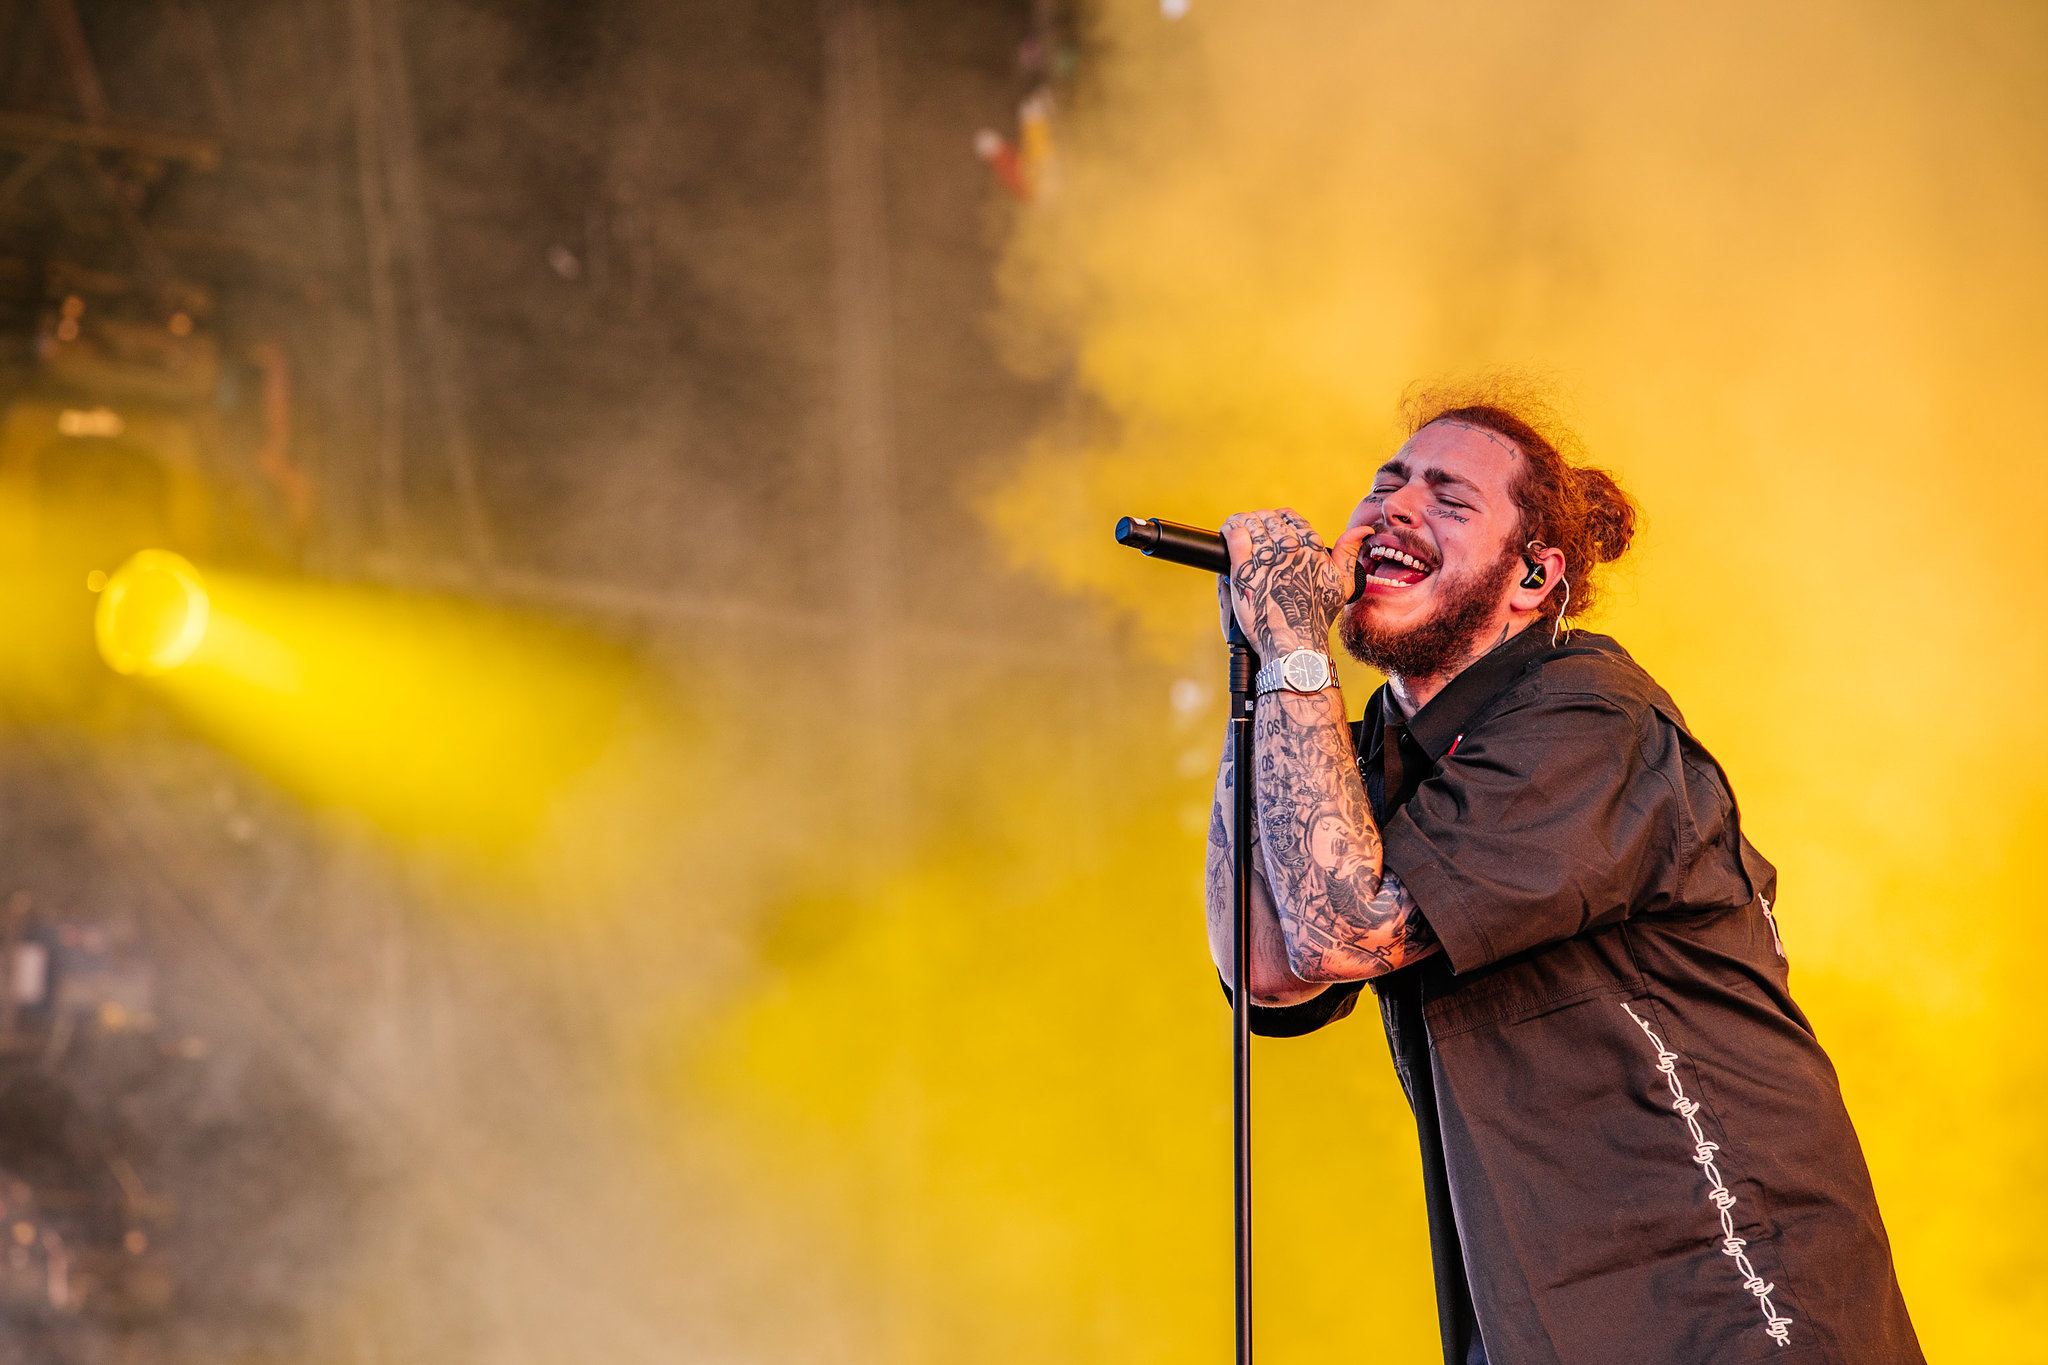 Post Malone at Wireless Festival